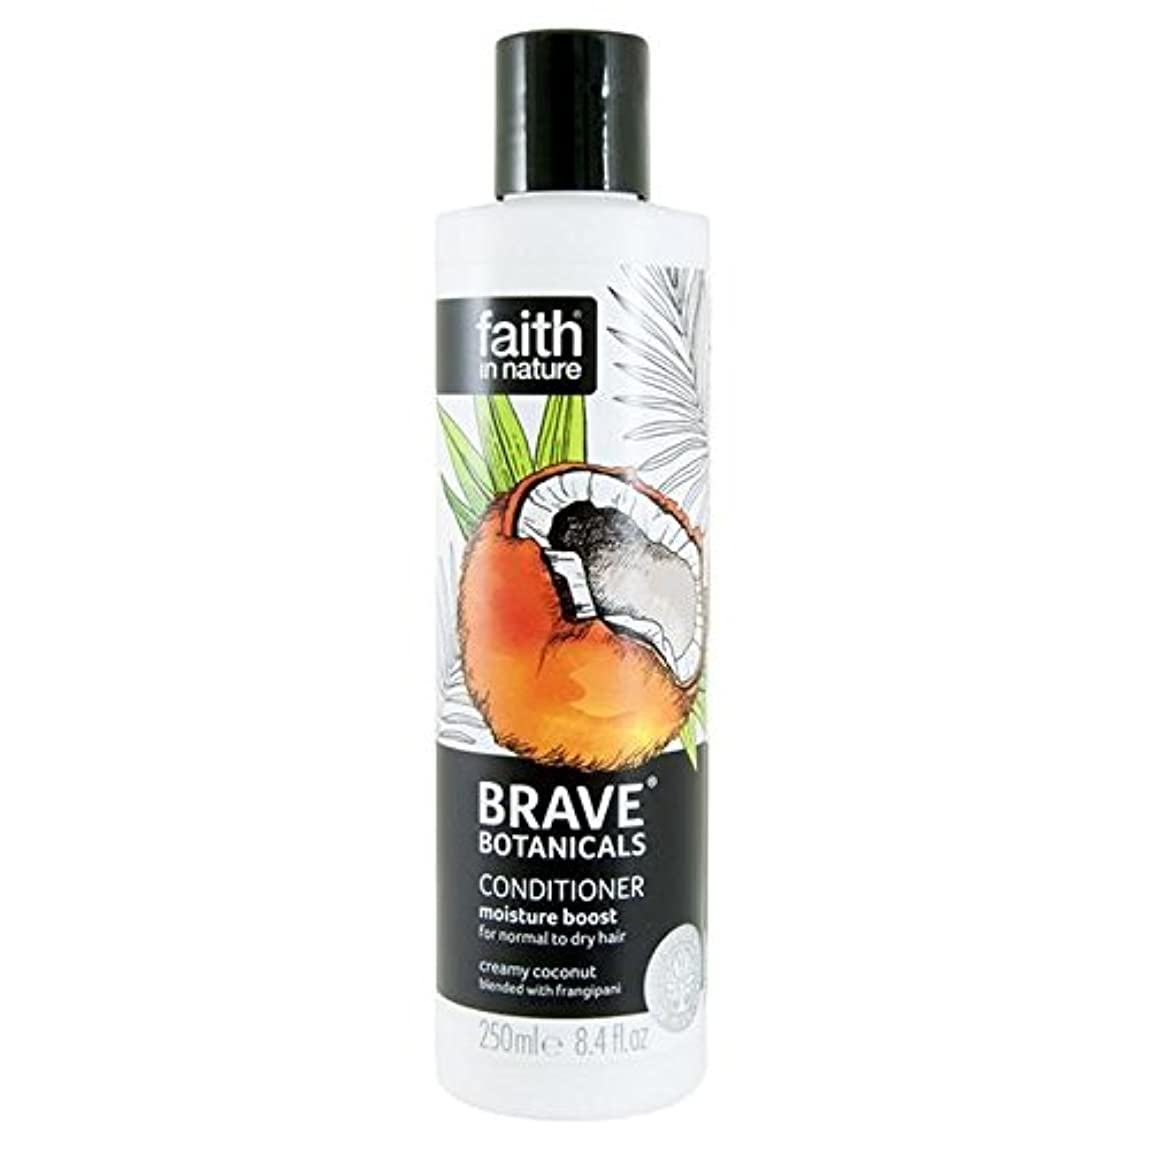 変化する救いスキャンBrave Botanicals Coconut & Frangipani Moisture Boost Conditioner 250ml (Pack of 2) - (Faith In Nature) 勇敢な植物ココナッツ...